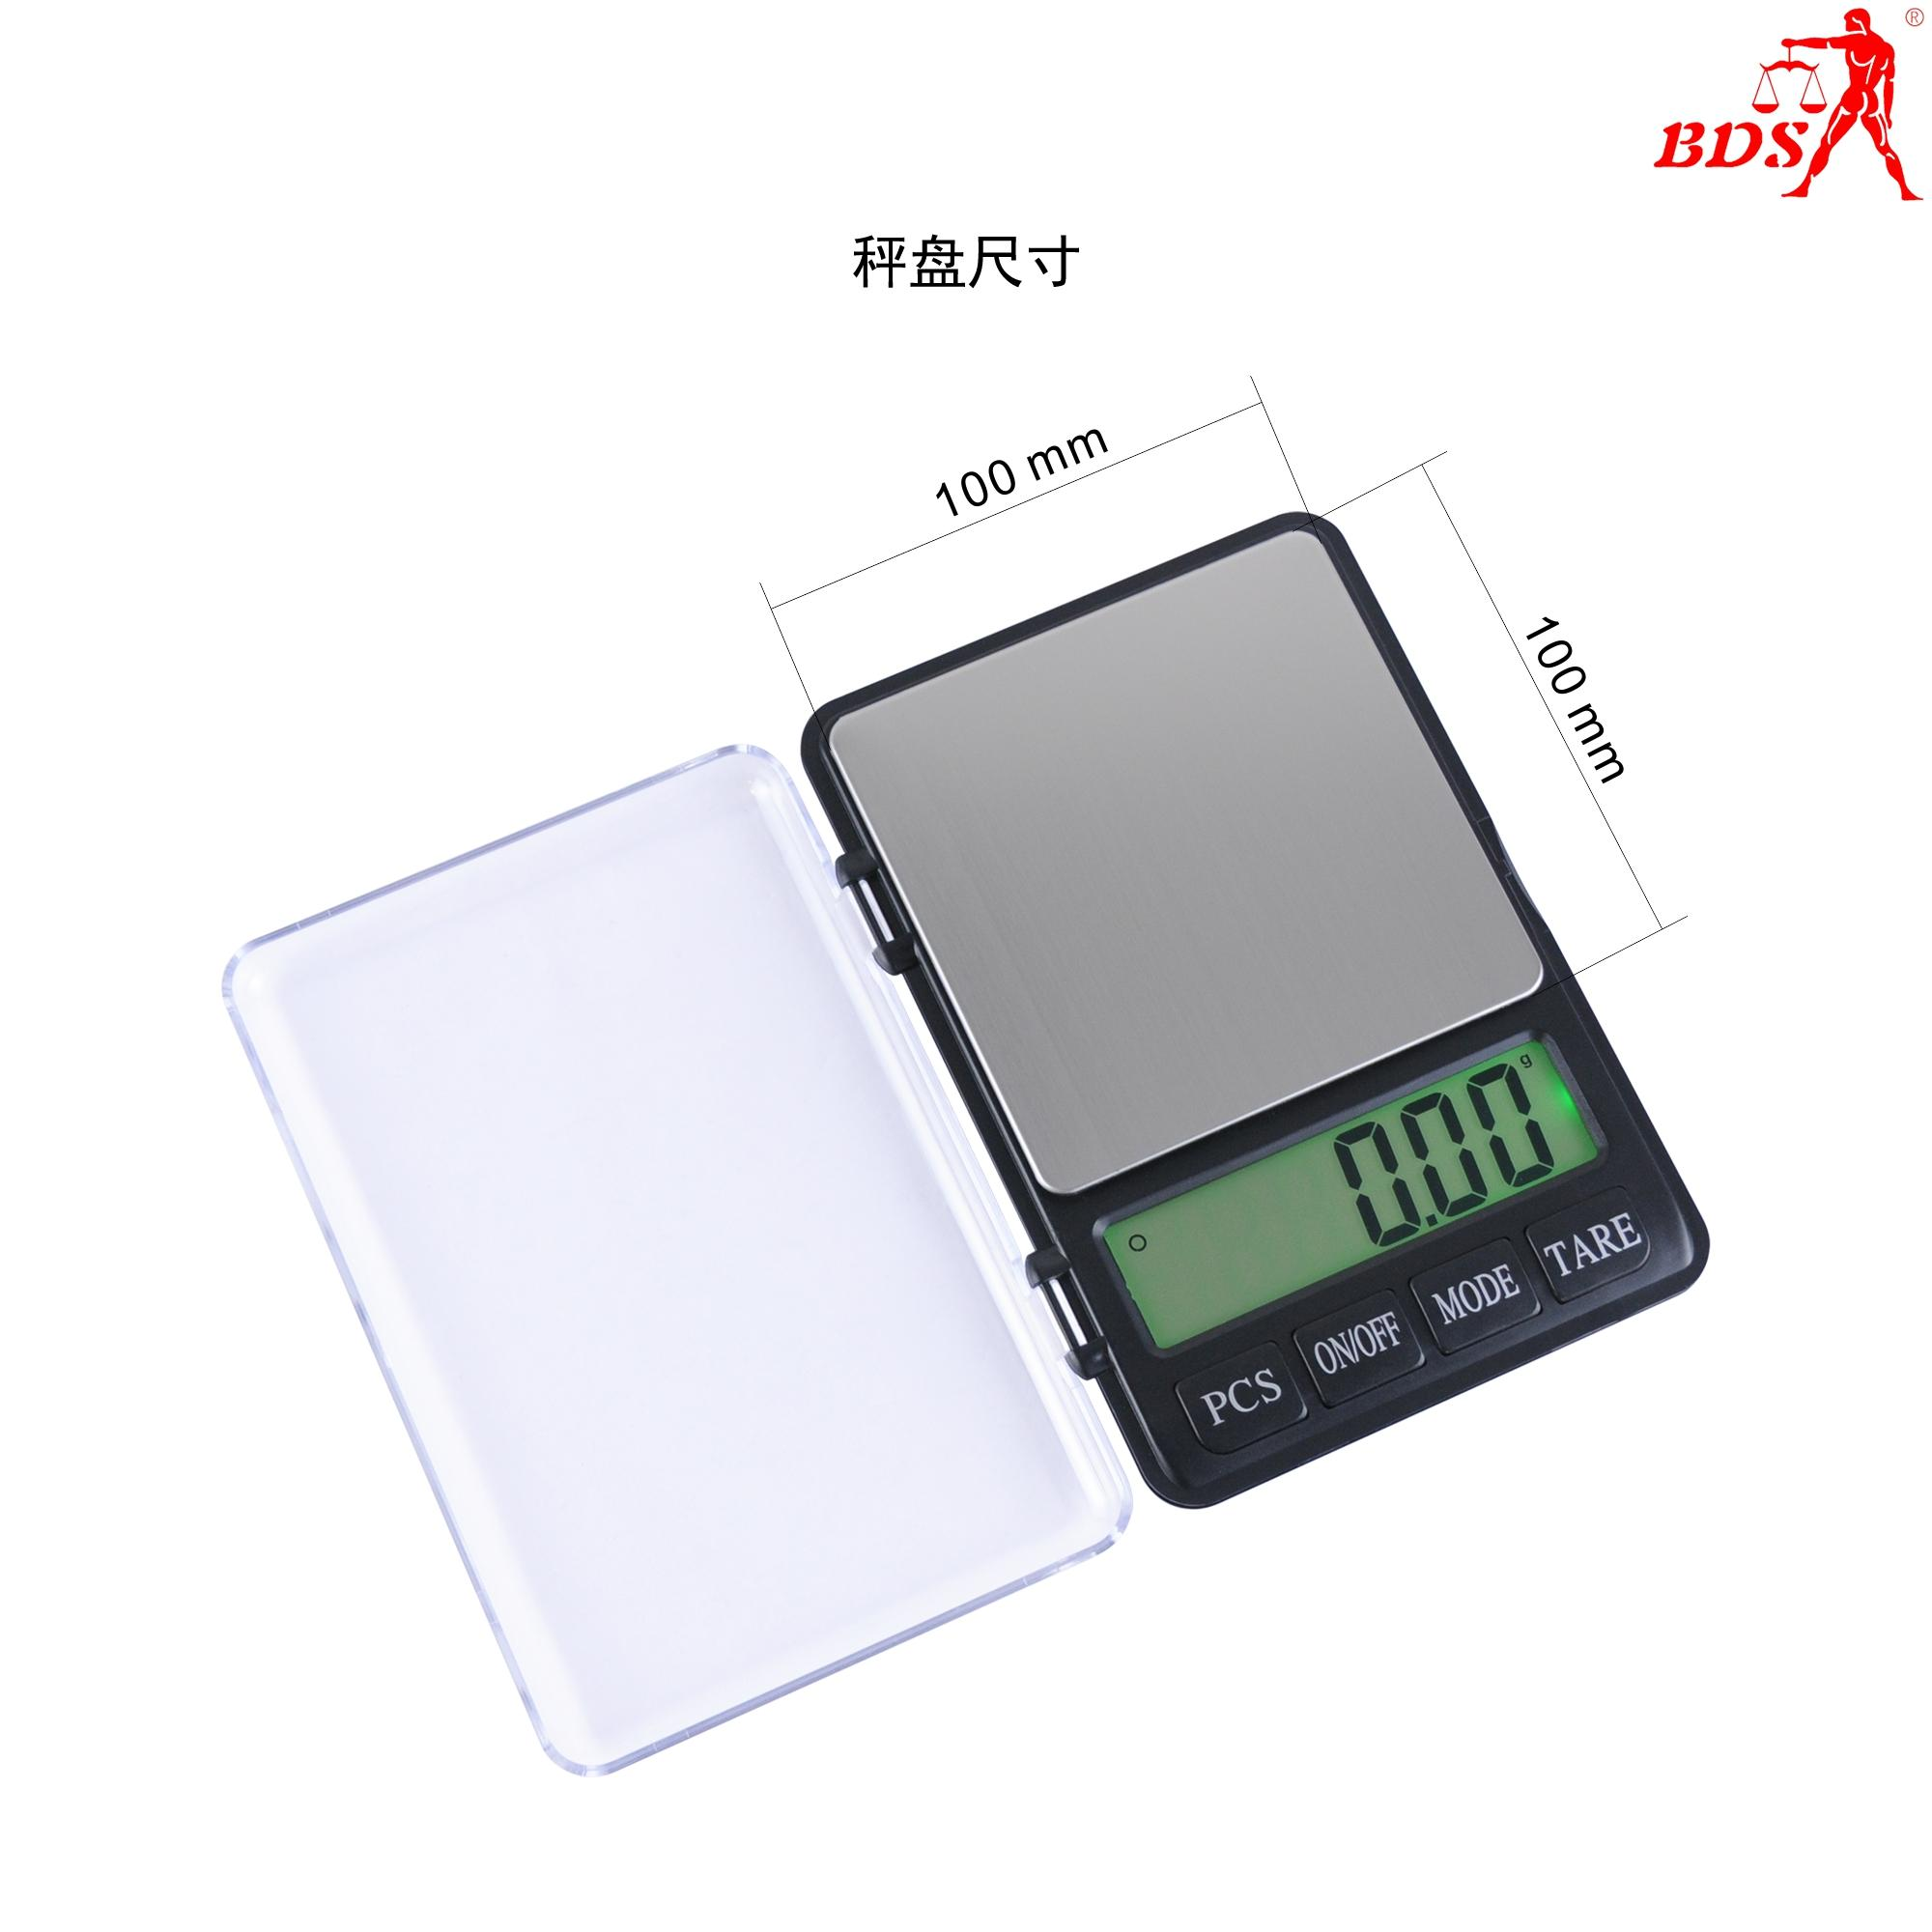 Shenzhen BDS Mini Pocket Scale jewelry scale pocket scale manufacturer 2